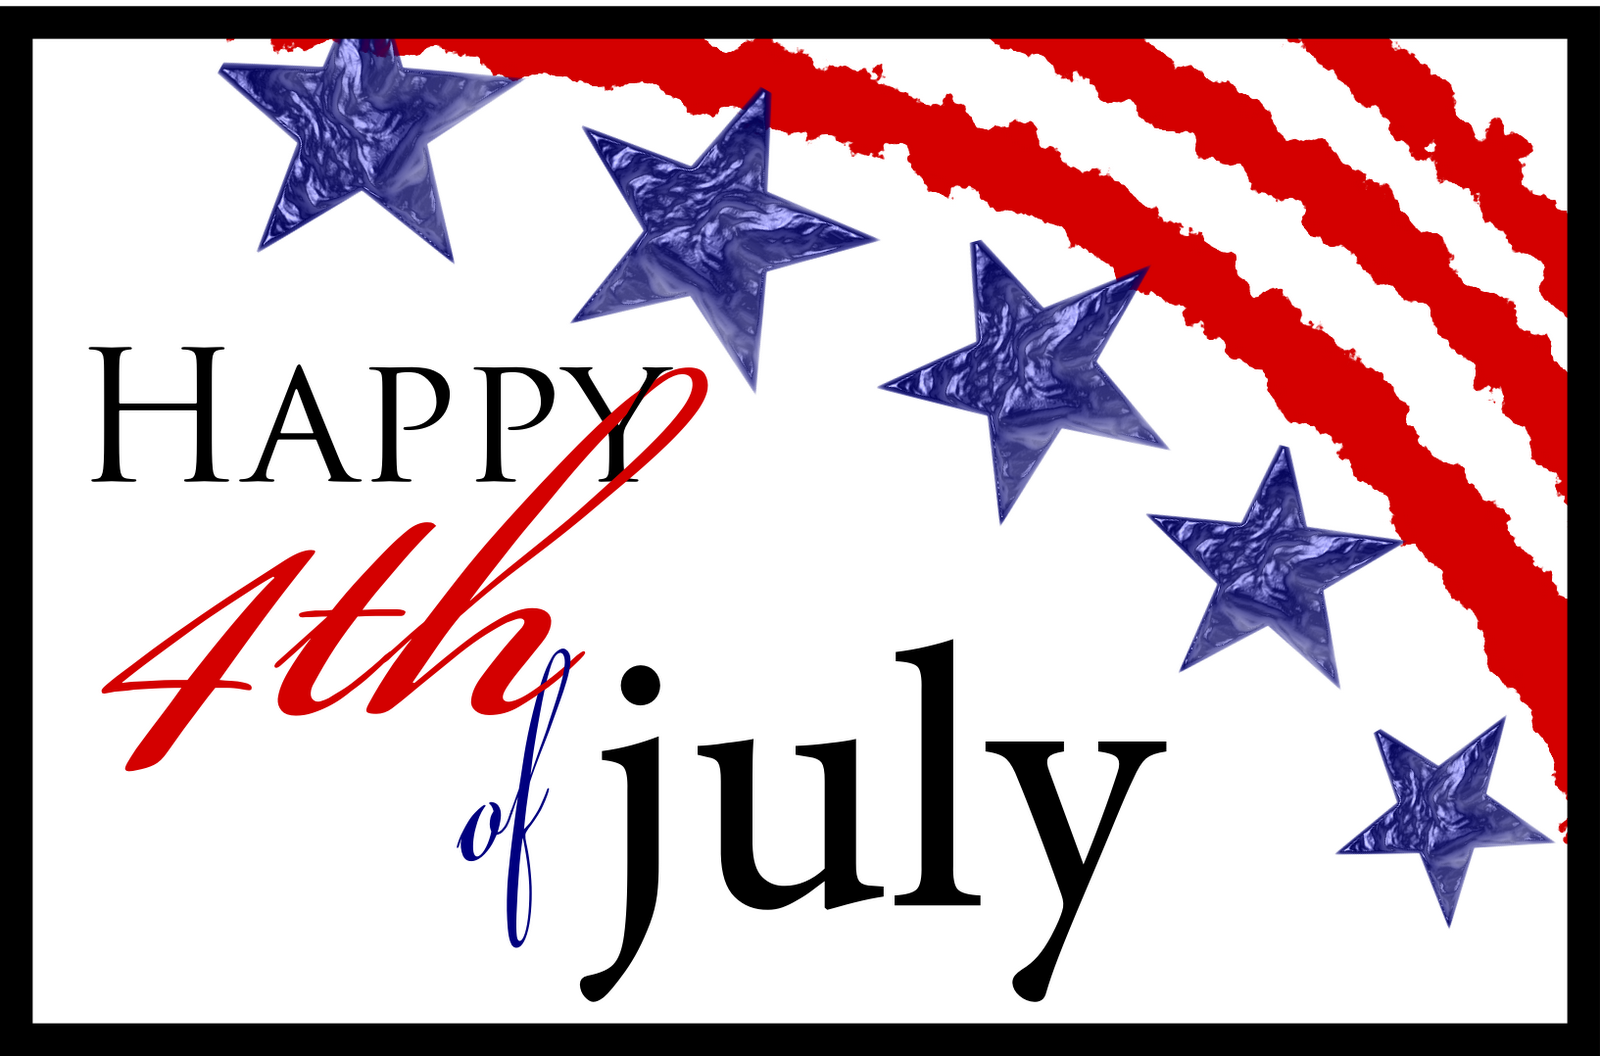 Have a wonderful 4th of July with your families